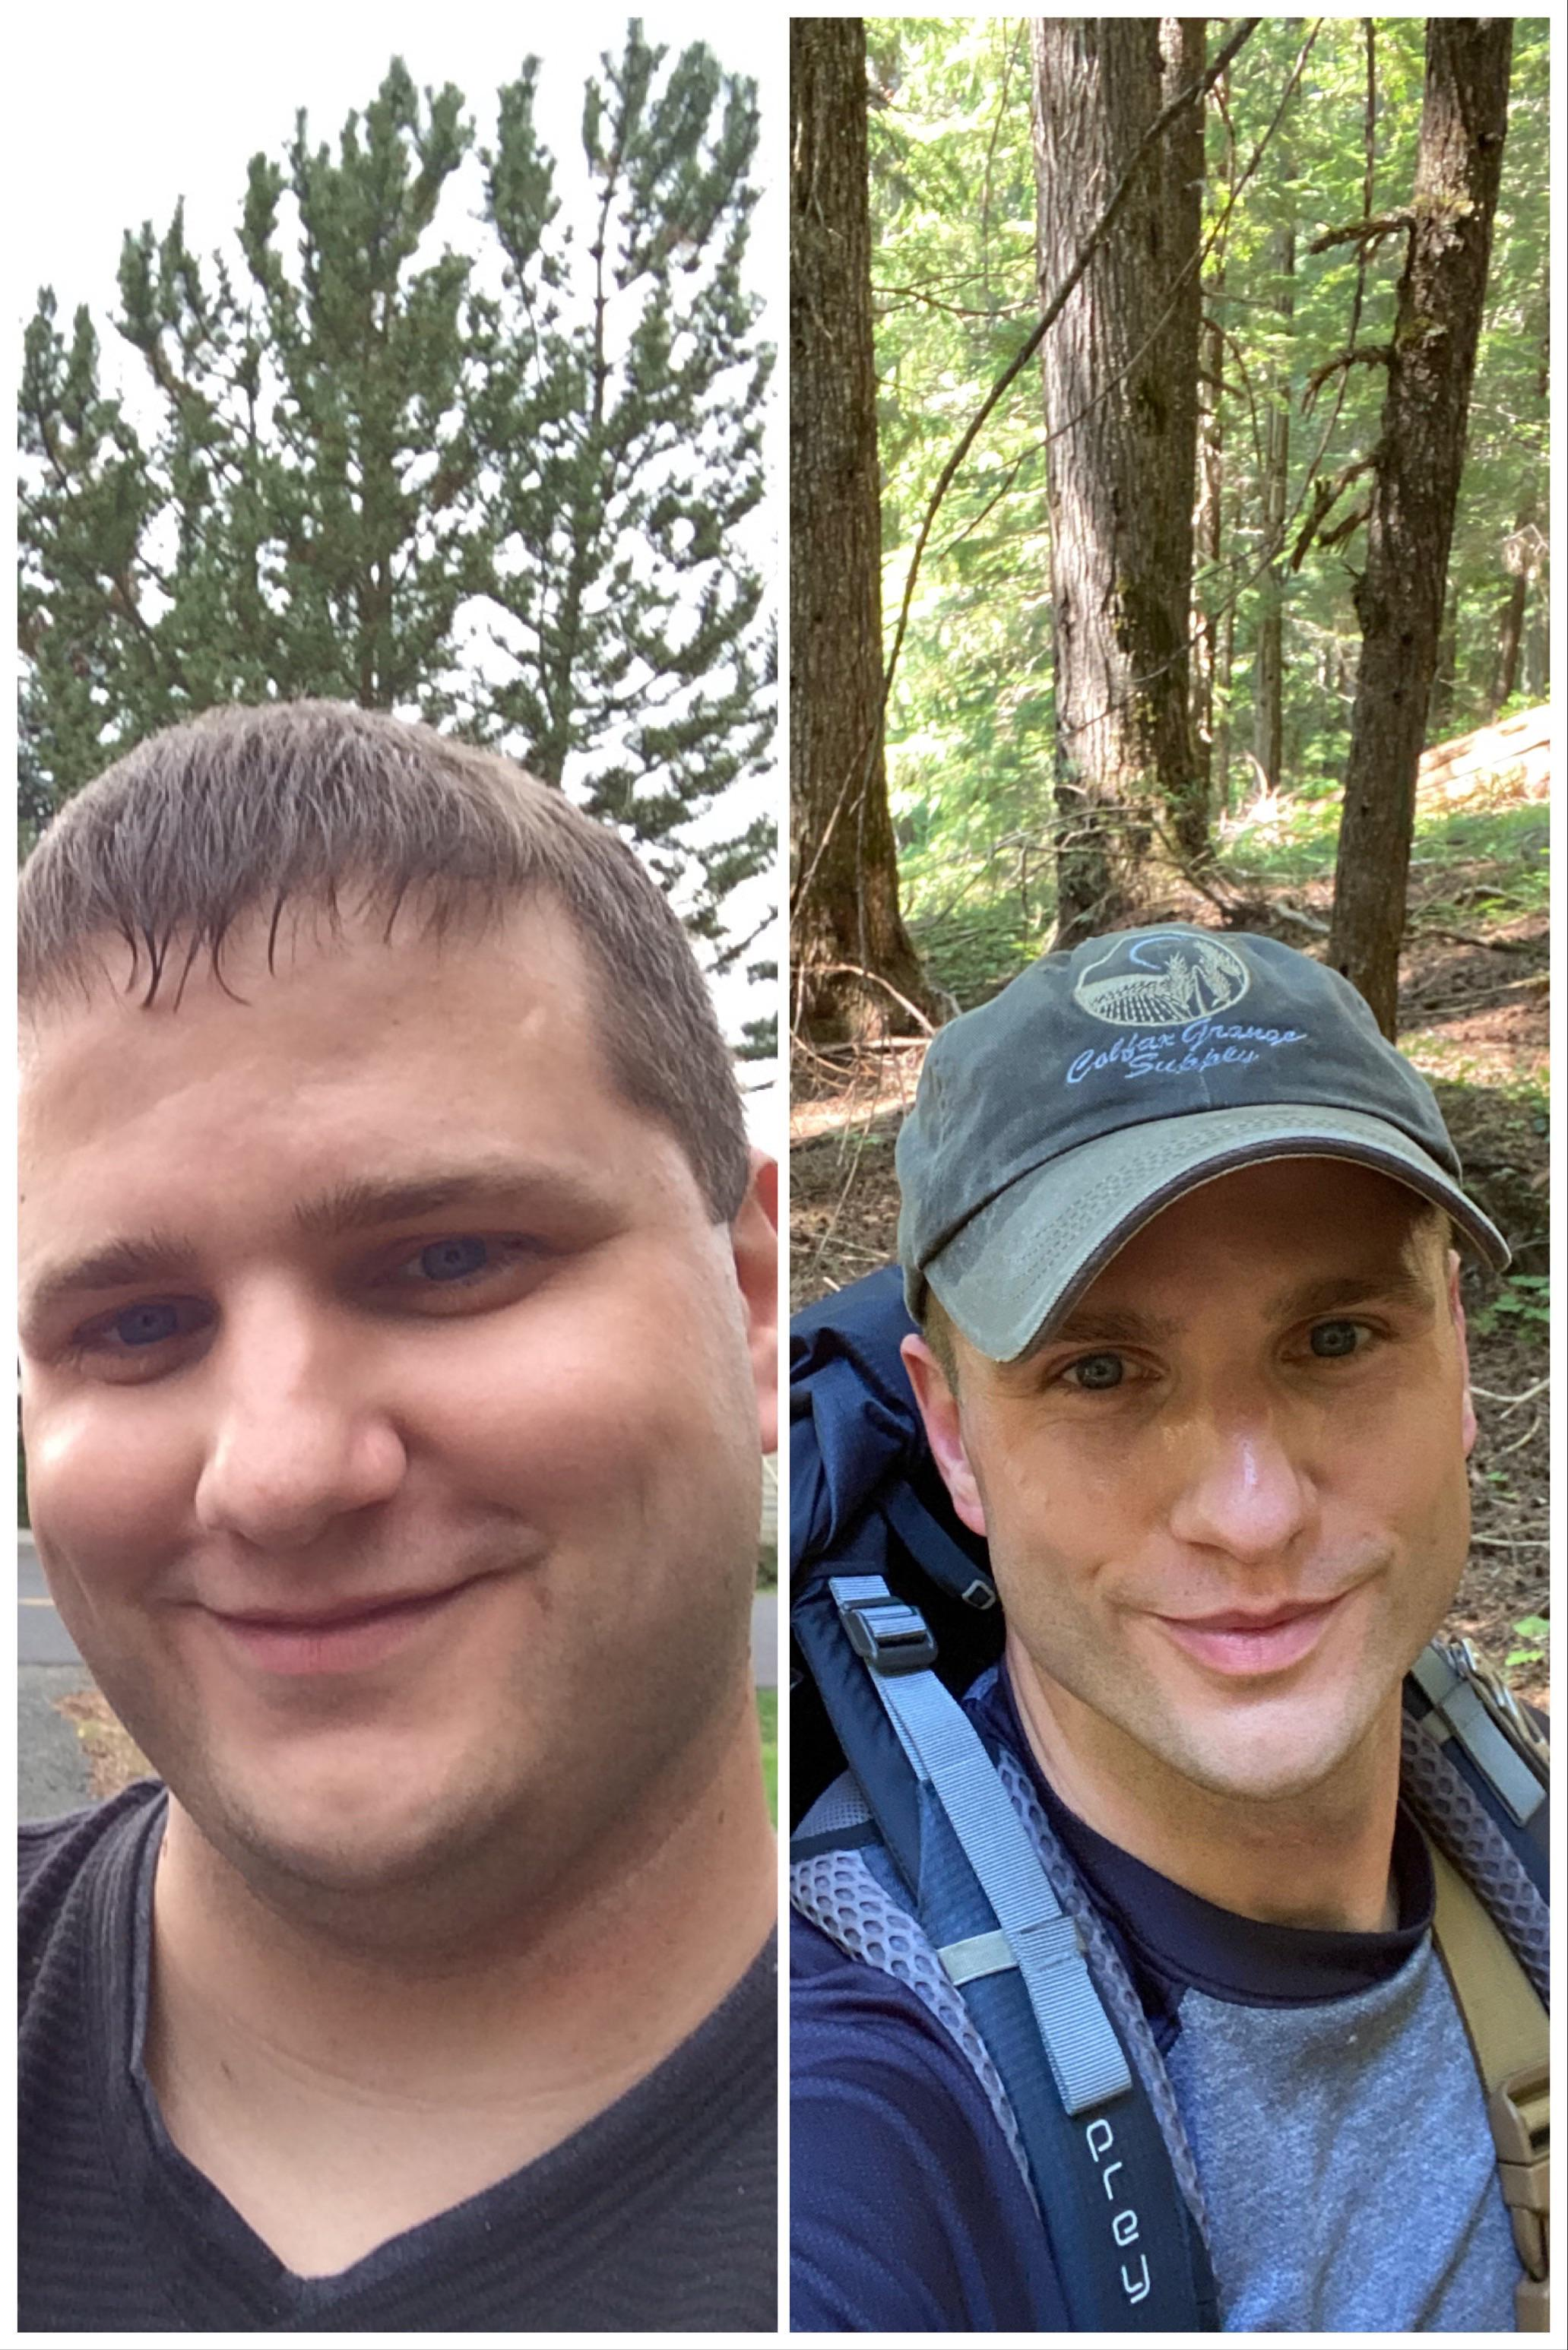 6 foot 2 Male Before and After 111 lbs Weight Loss 296 lbs to 185 lbs